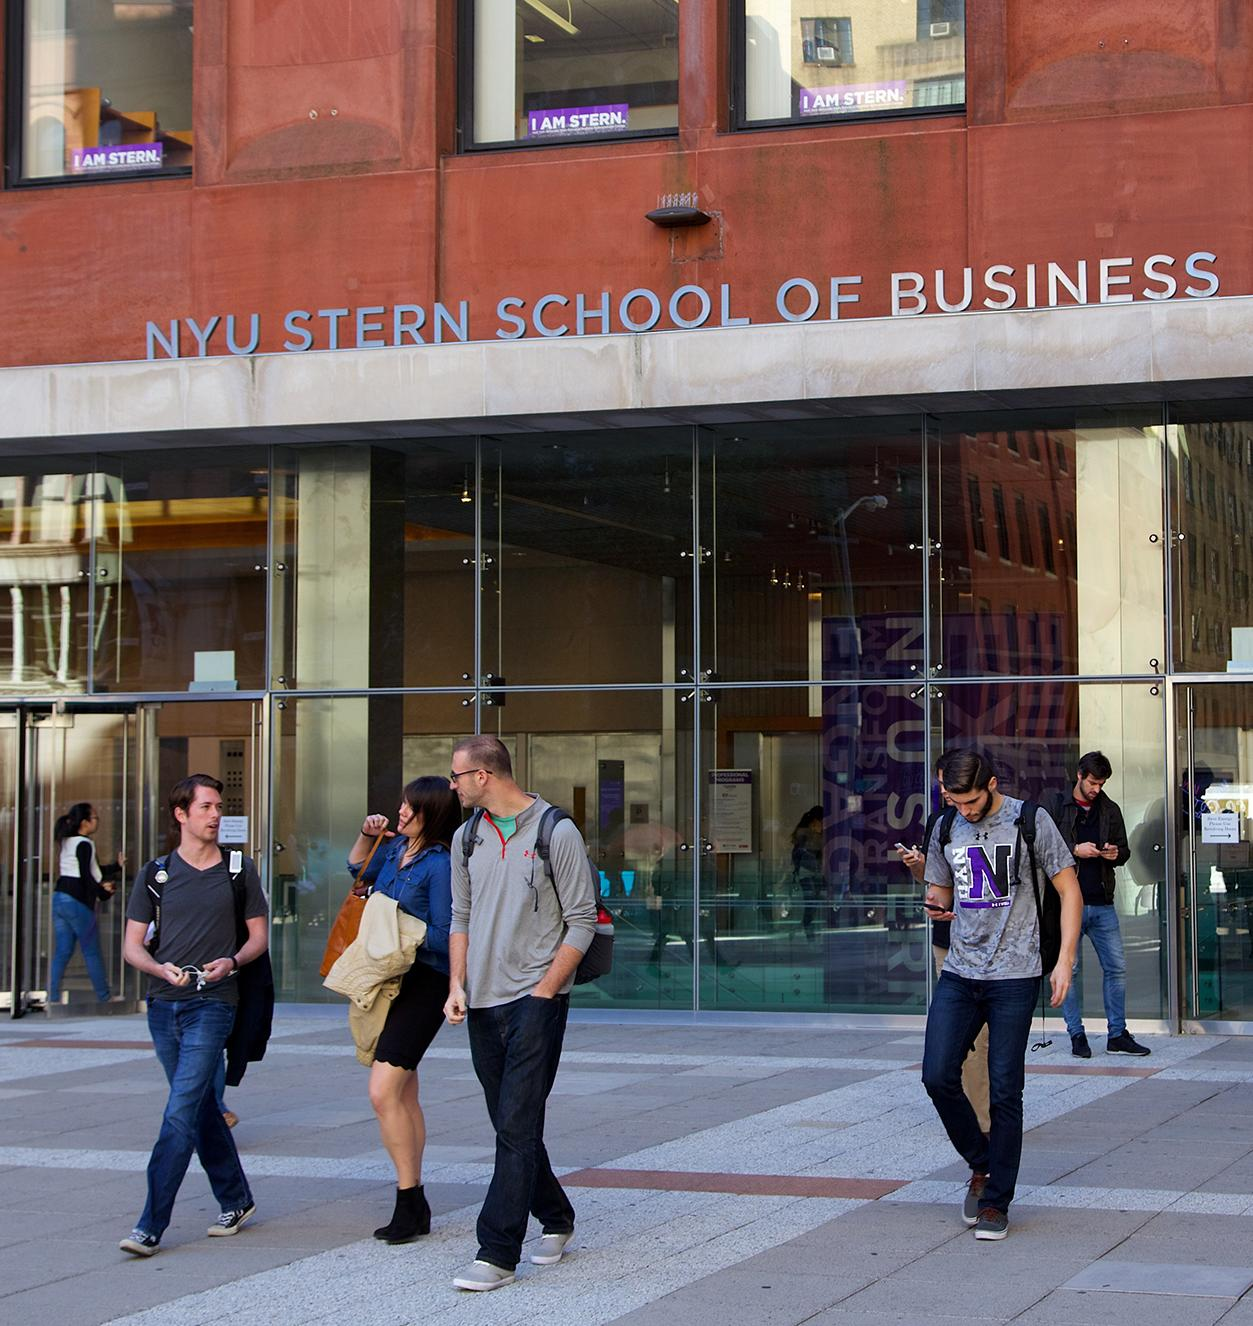 NYU Stern outside with people